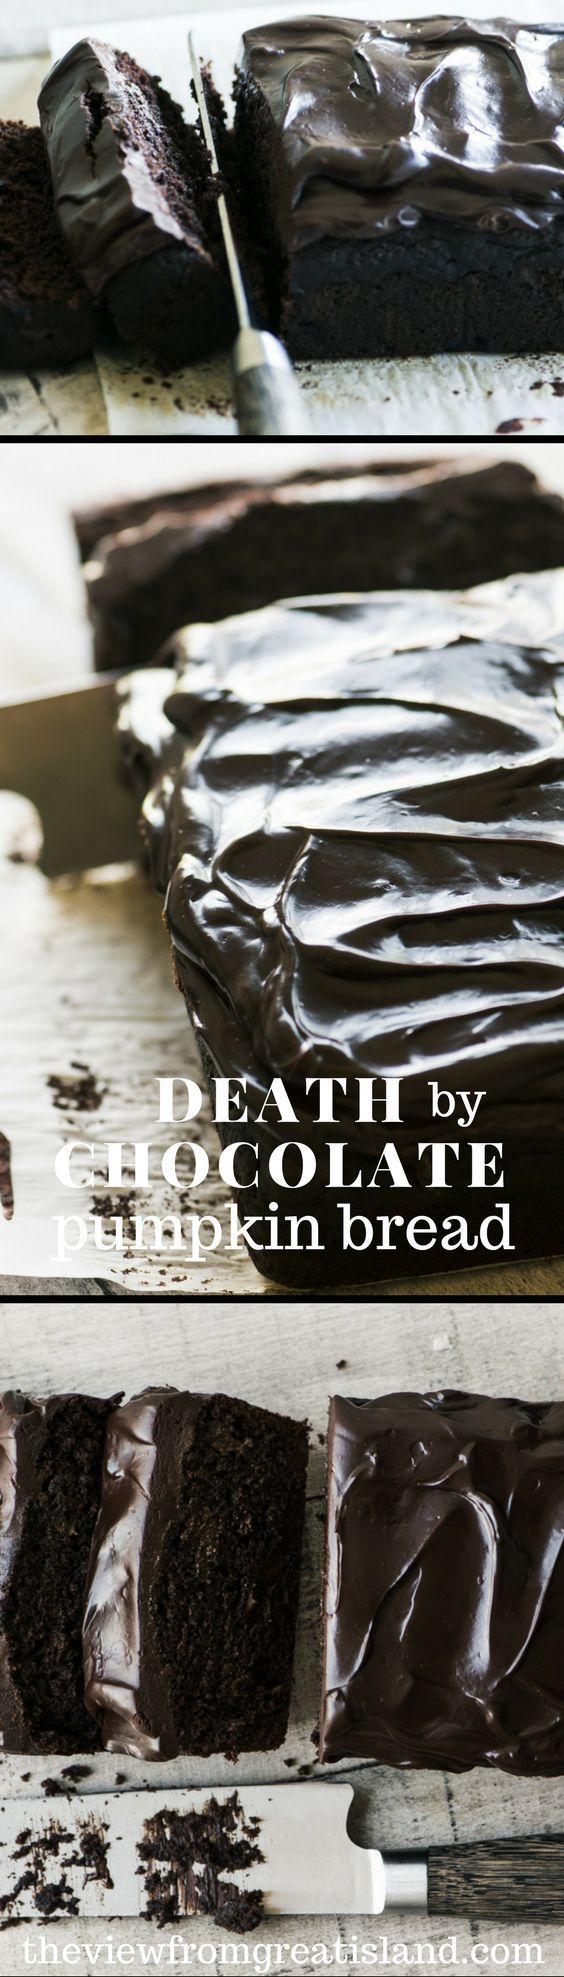 If you're a pumpkin lover, or a chocolate lover, you can't afford to pass up this Death by Chocolate Pumpkin Bread, it's decadently delicious. A great recipe to try for a Halloween party.